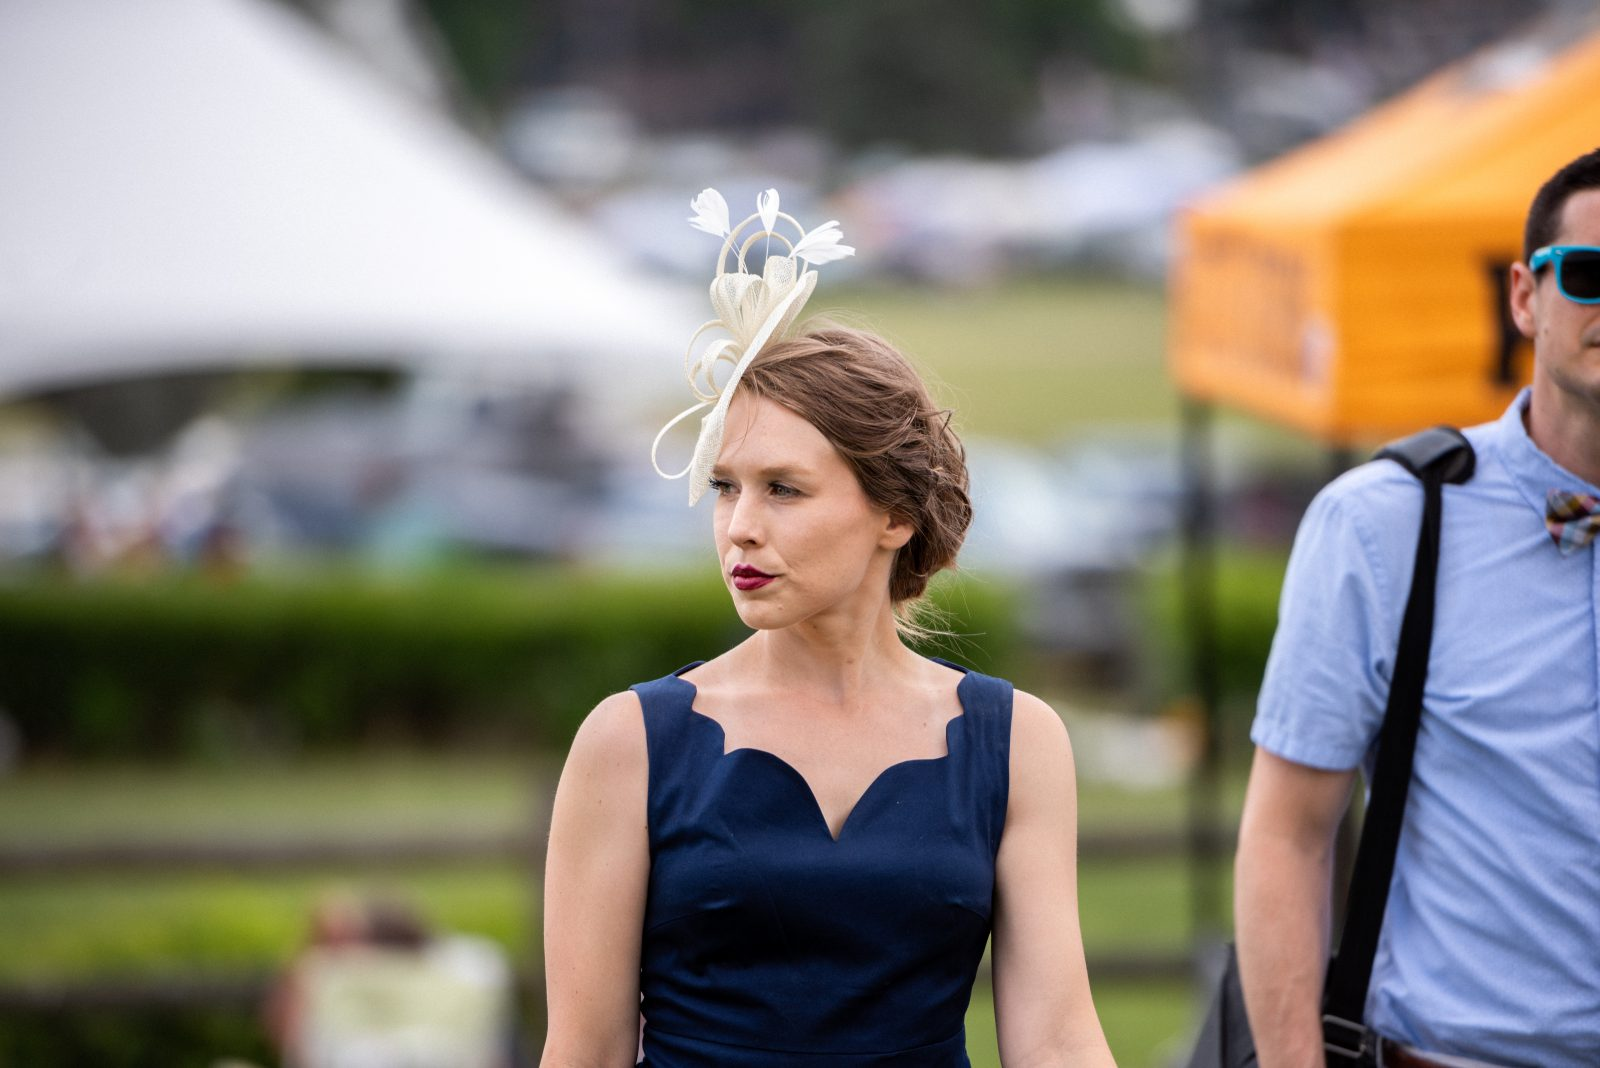 Caitlin Rantela with a navy blue dress and wearing a white ribbon fascinator.